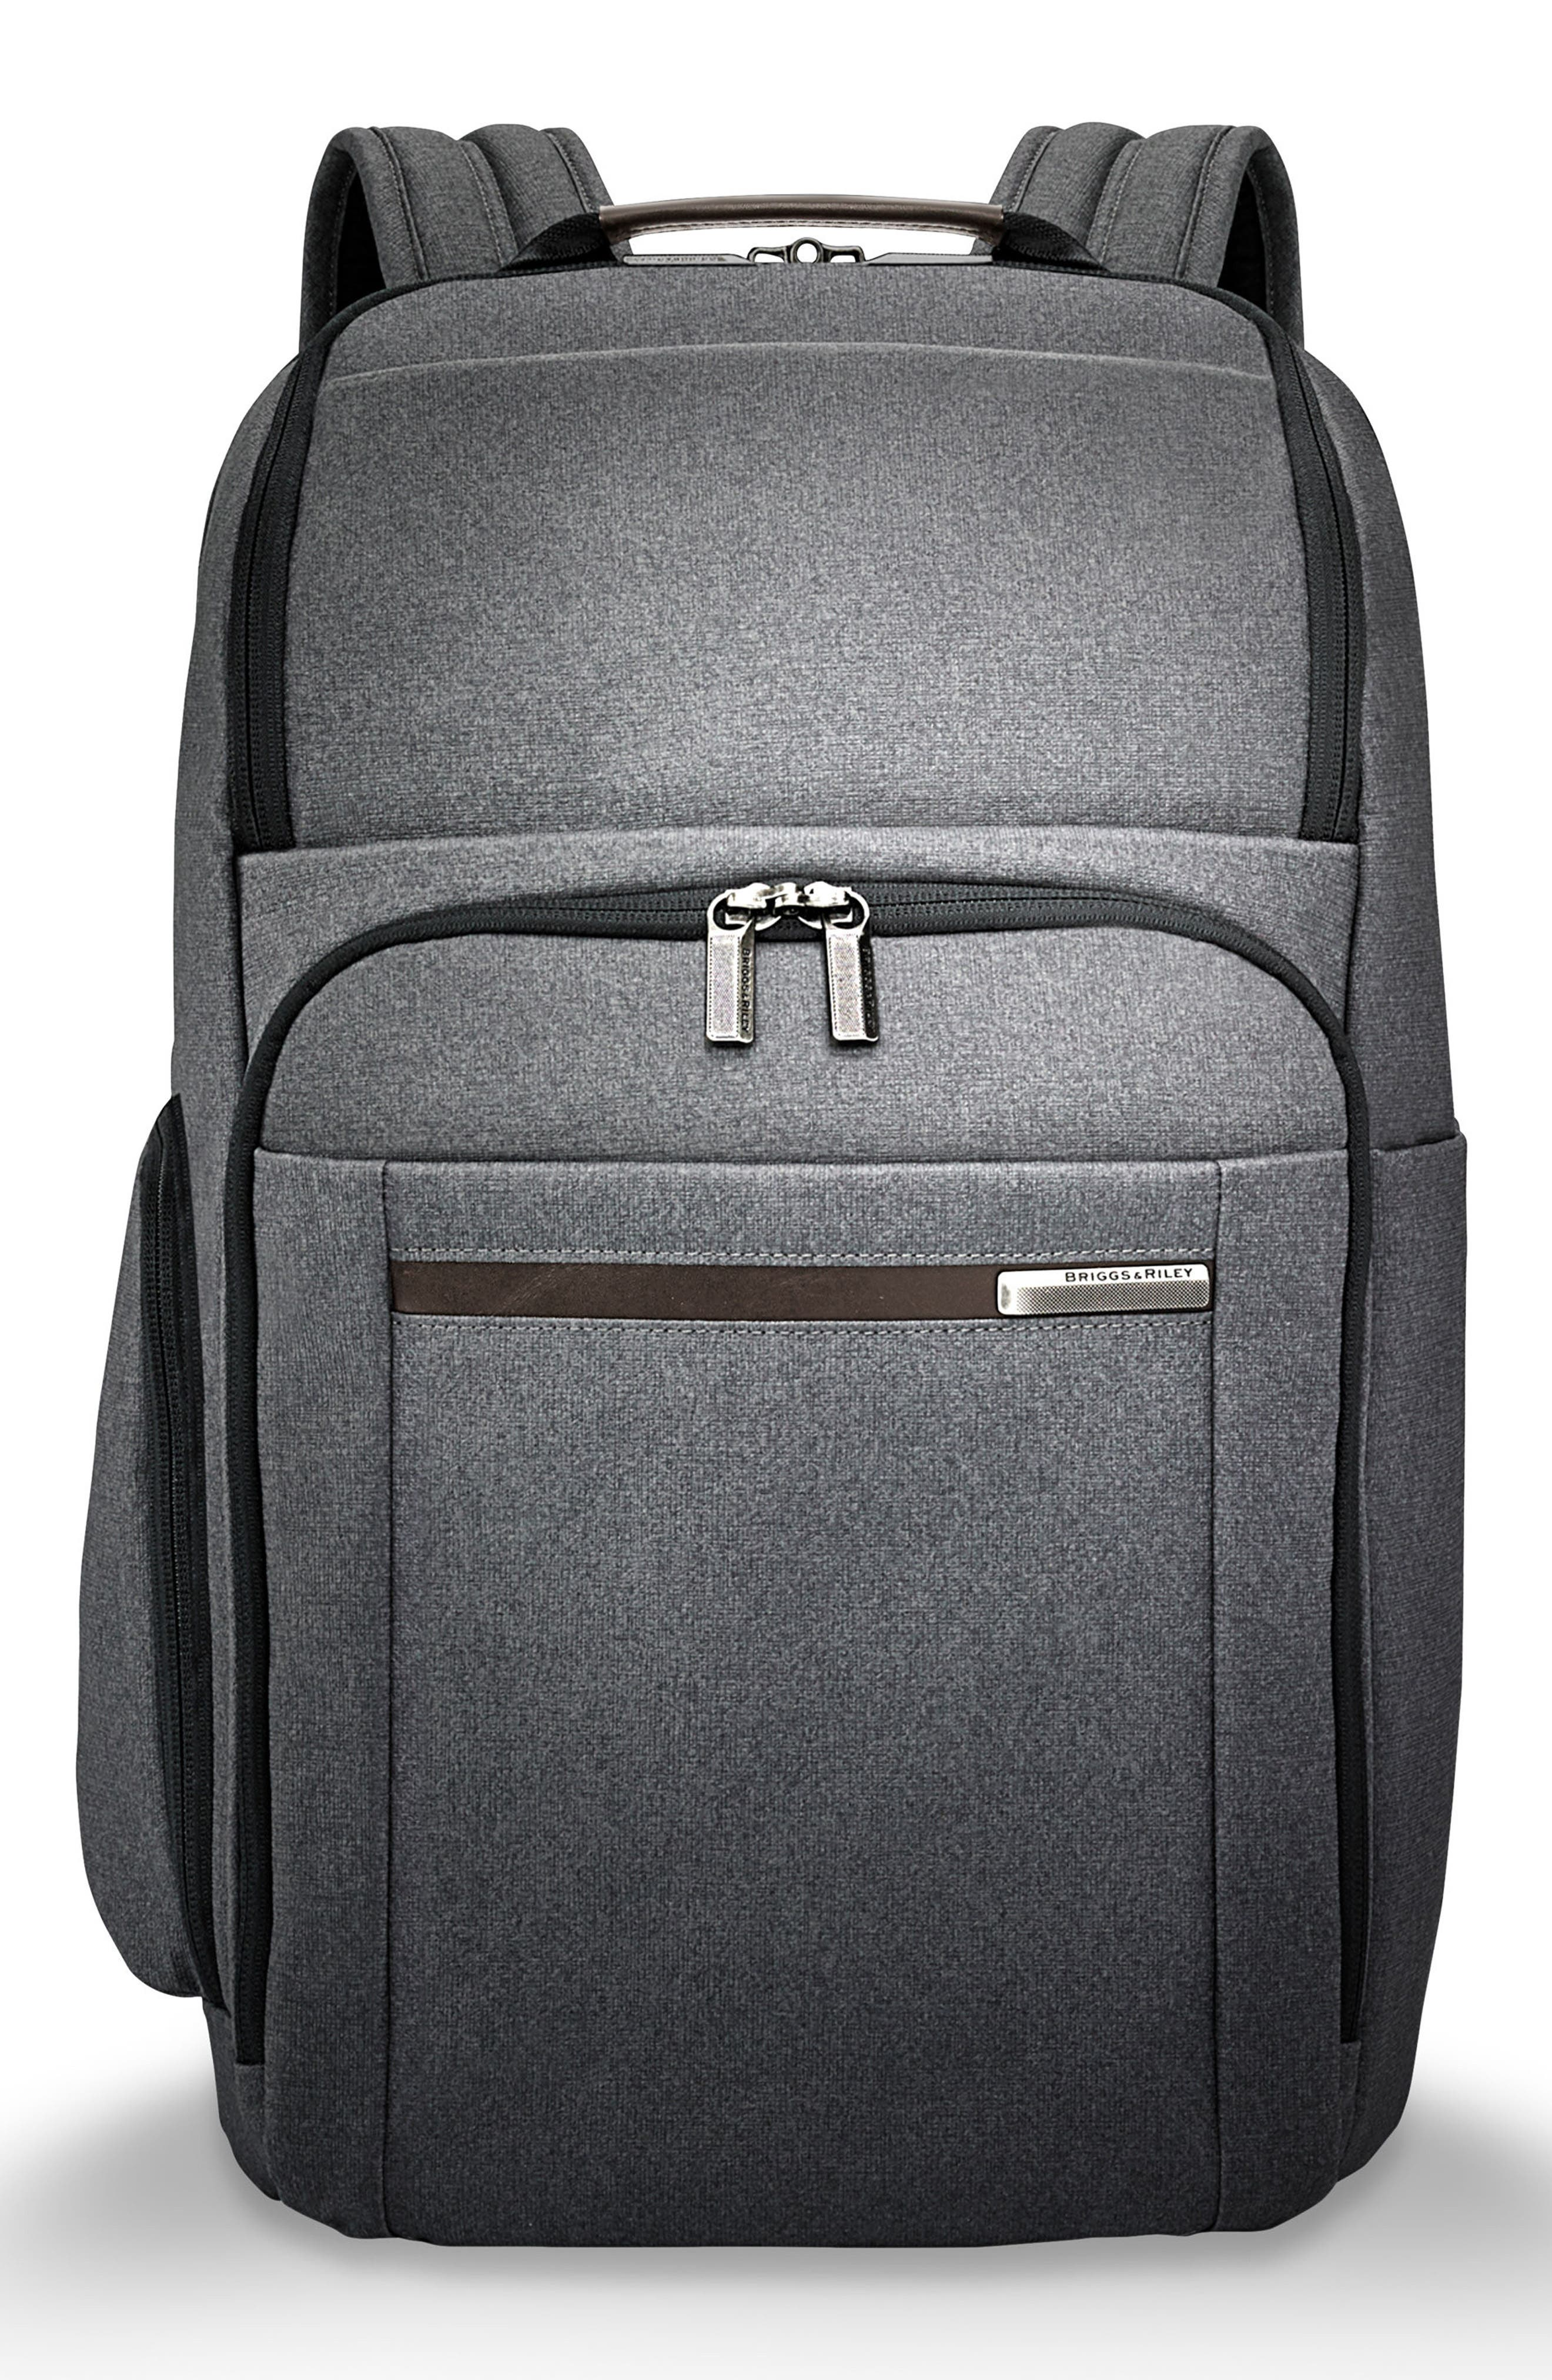 Kinzie Street Backpack,                         Main,                         color, GREY